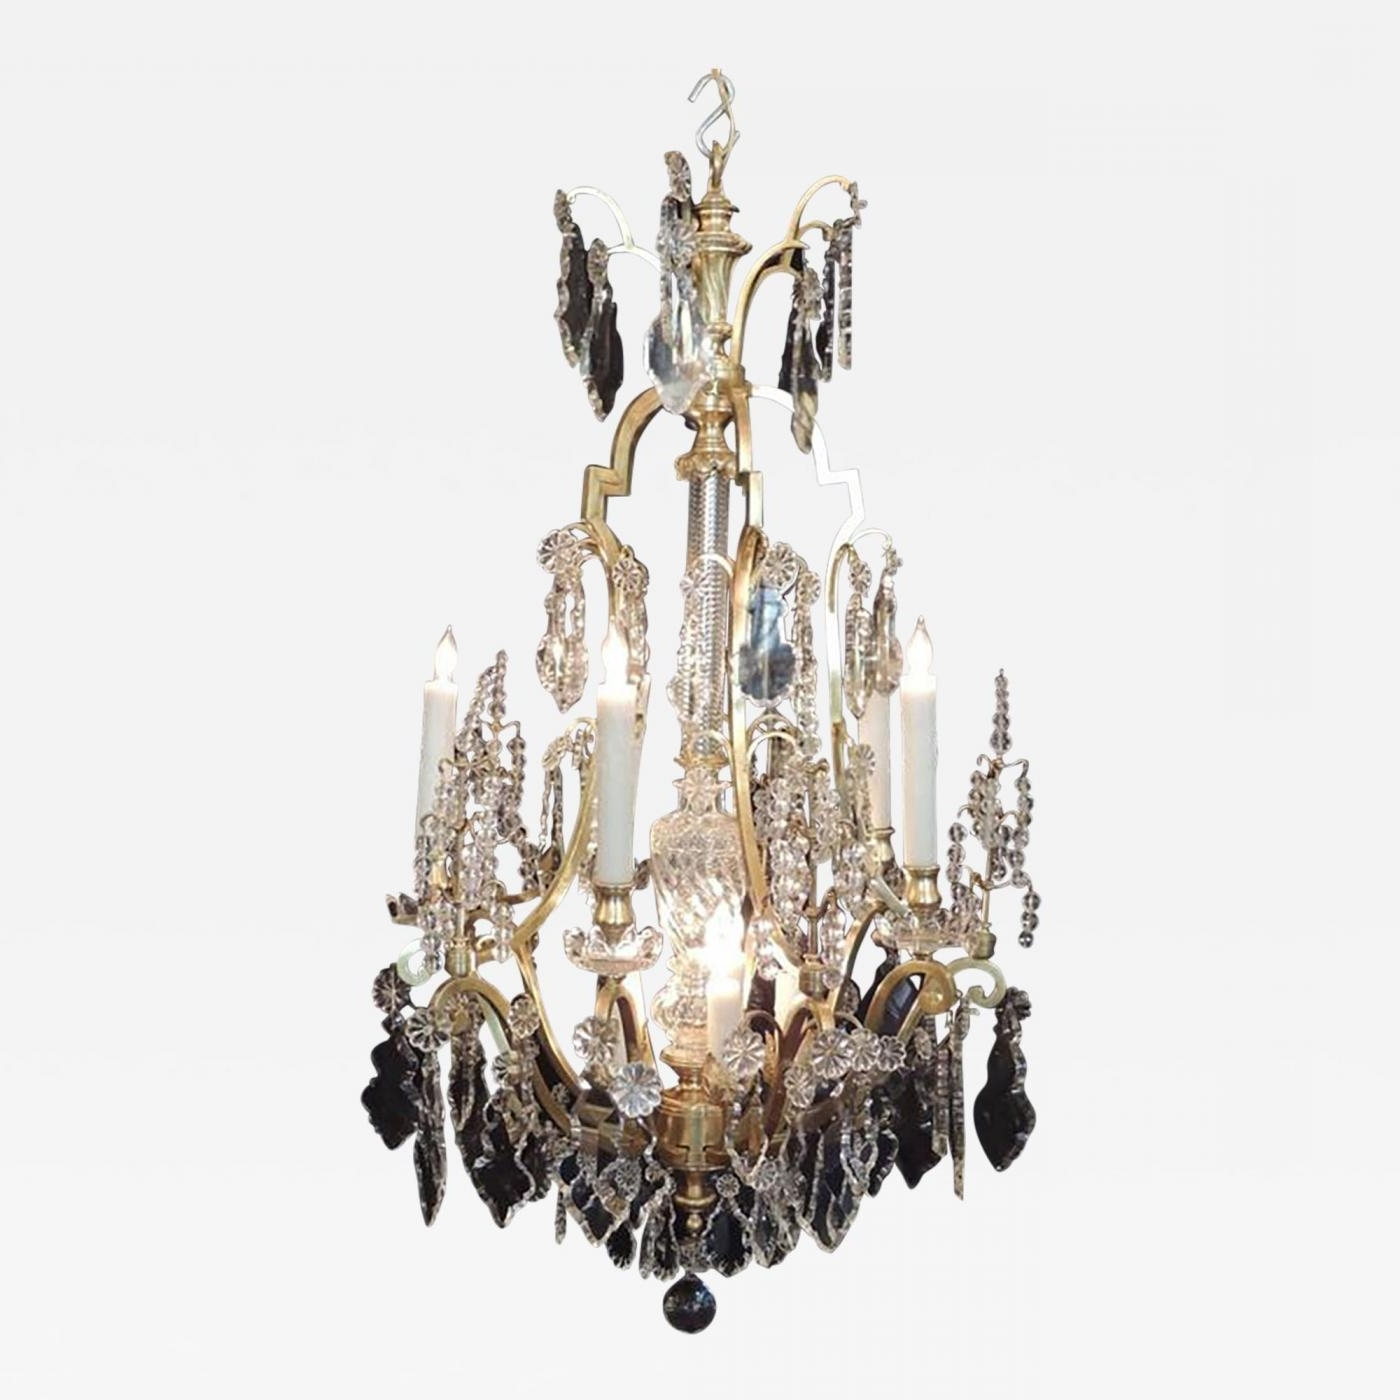 Early 20Th C French Bronze Doré And Lead Crystal Chandelier intended for 2018 Lead Crystal Chandeliers